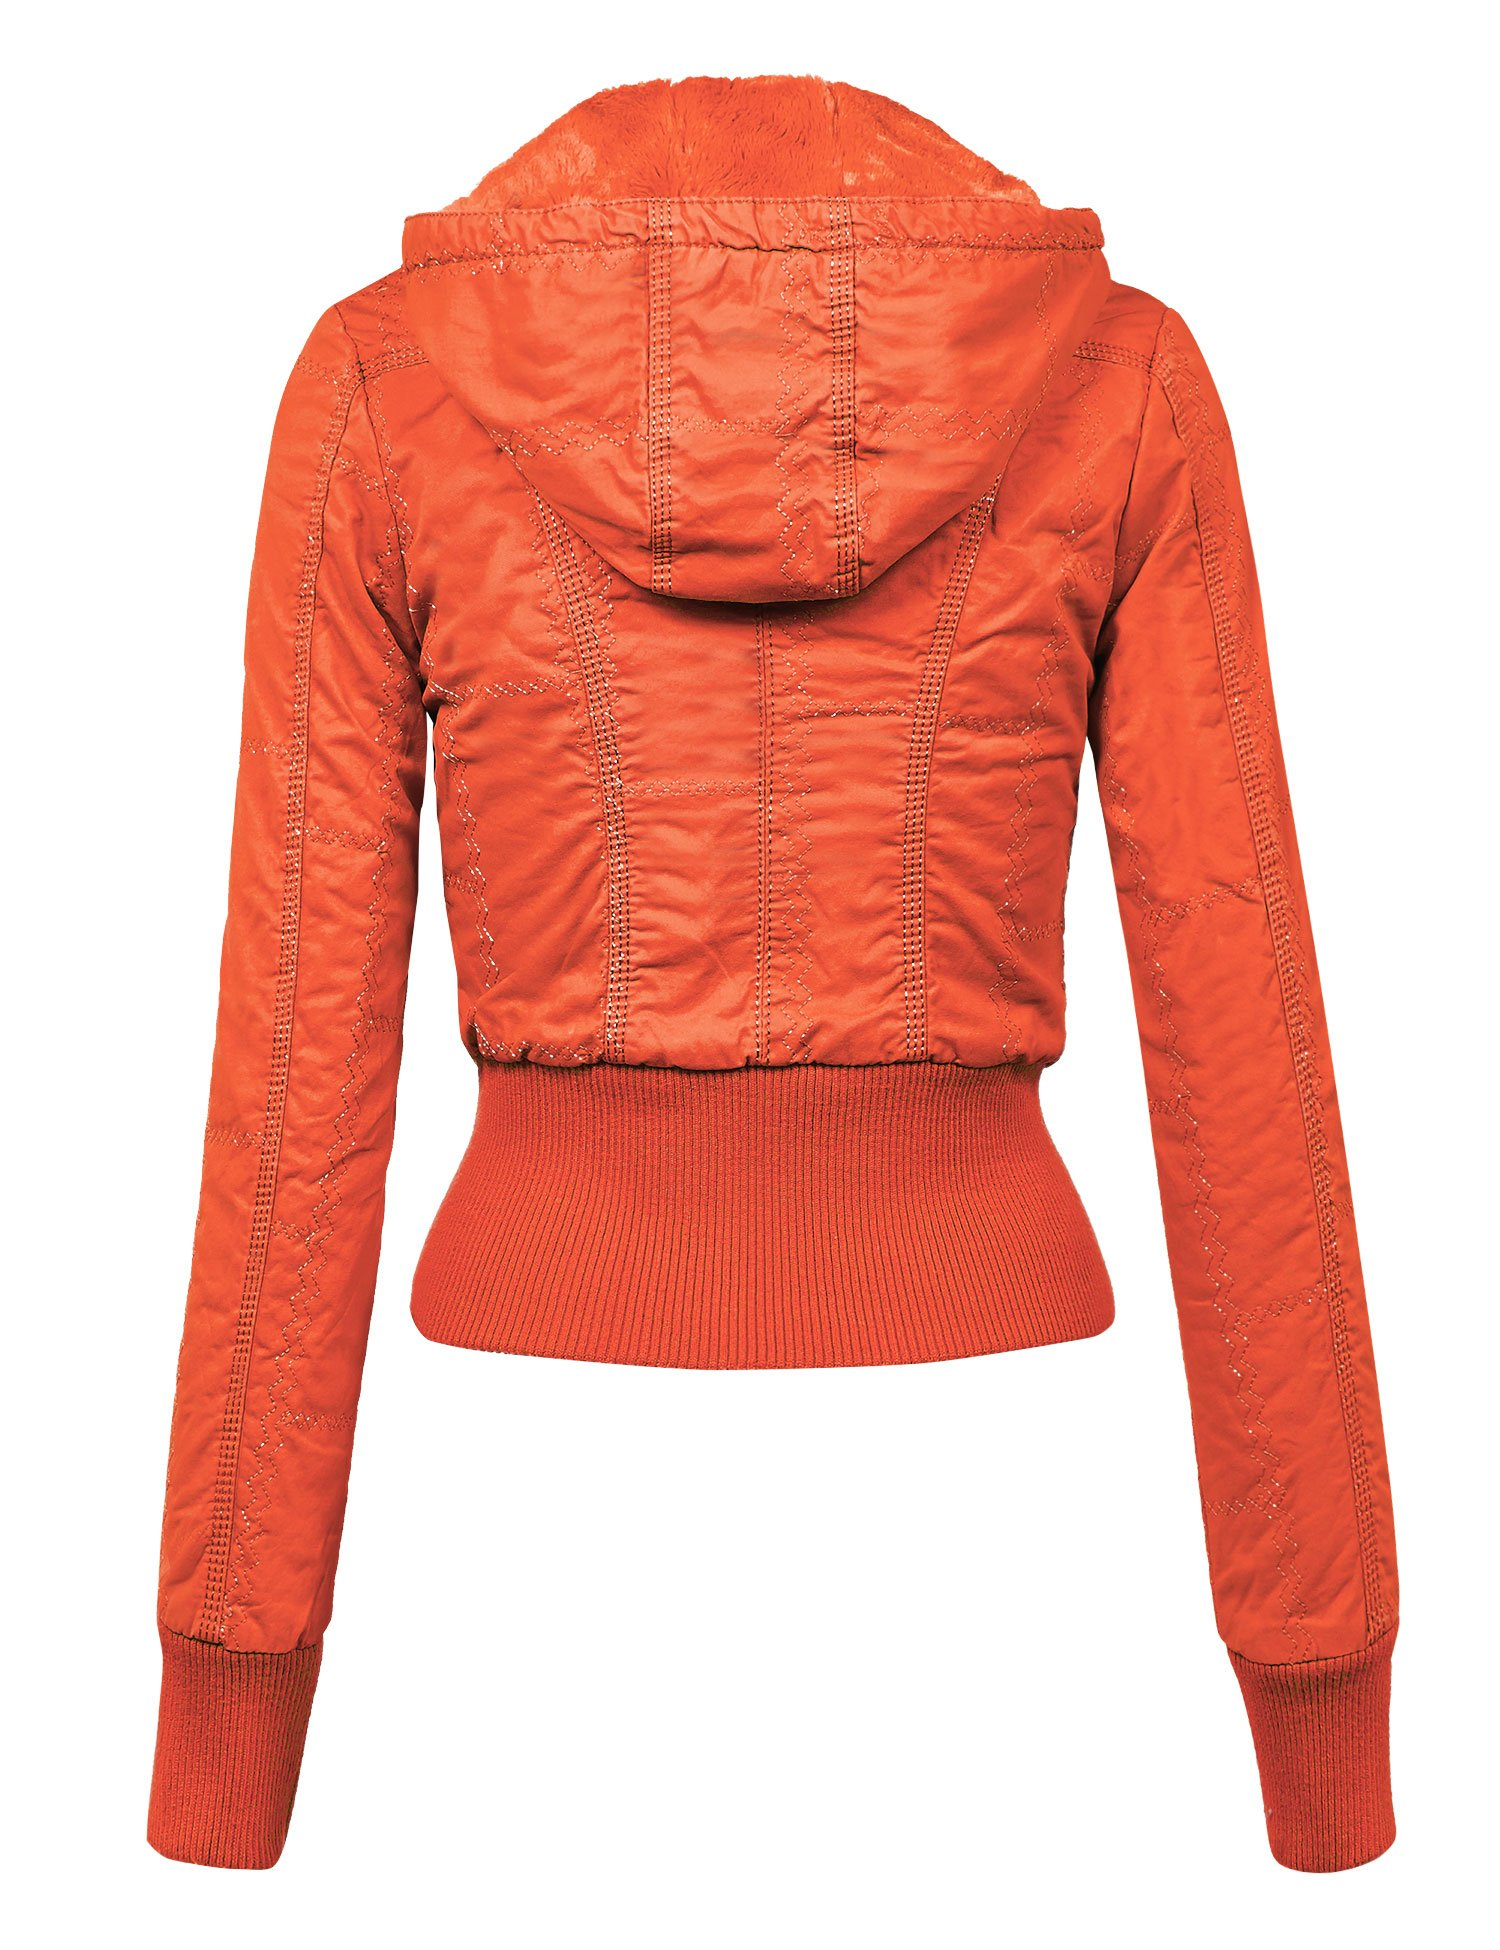 WJC1004 Womens Casual Inner Fleece Bomber Jacket with Removable Hoodie L CORAL by Lock and Love (Image #2)